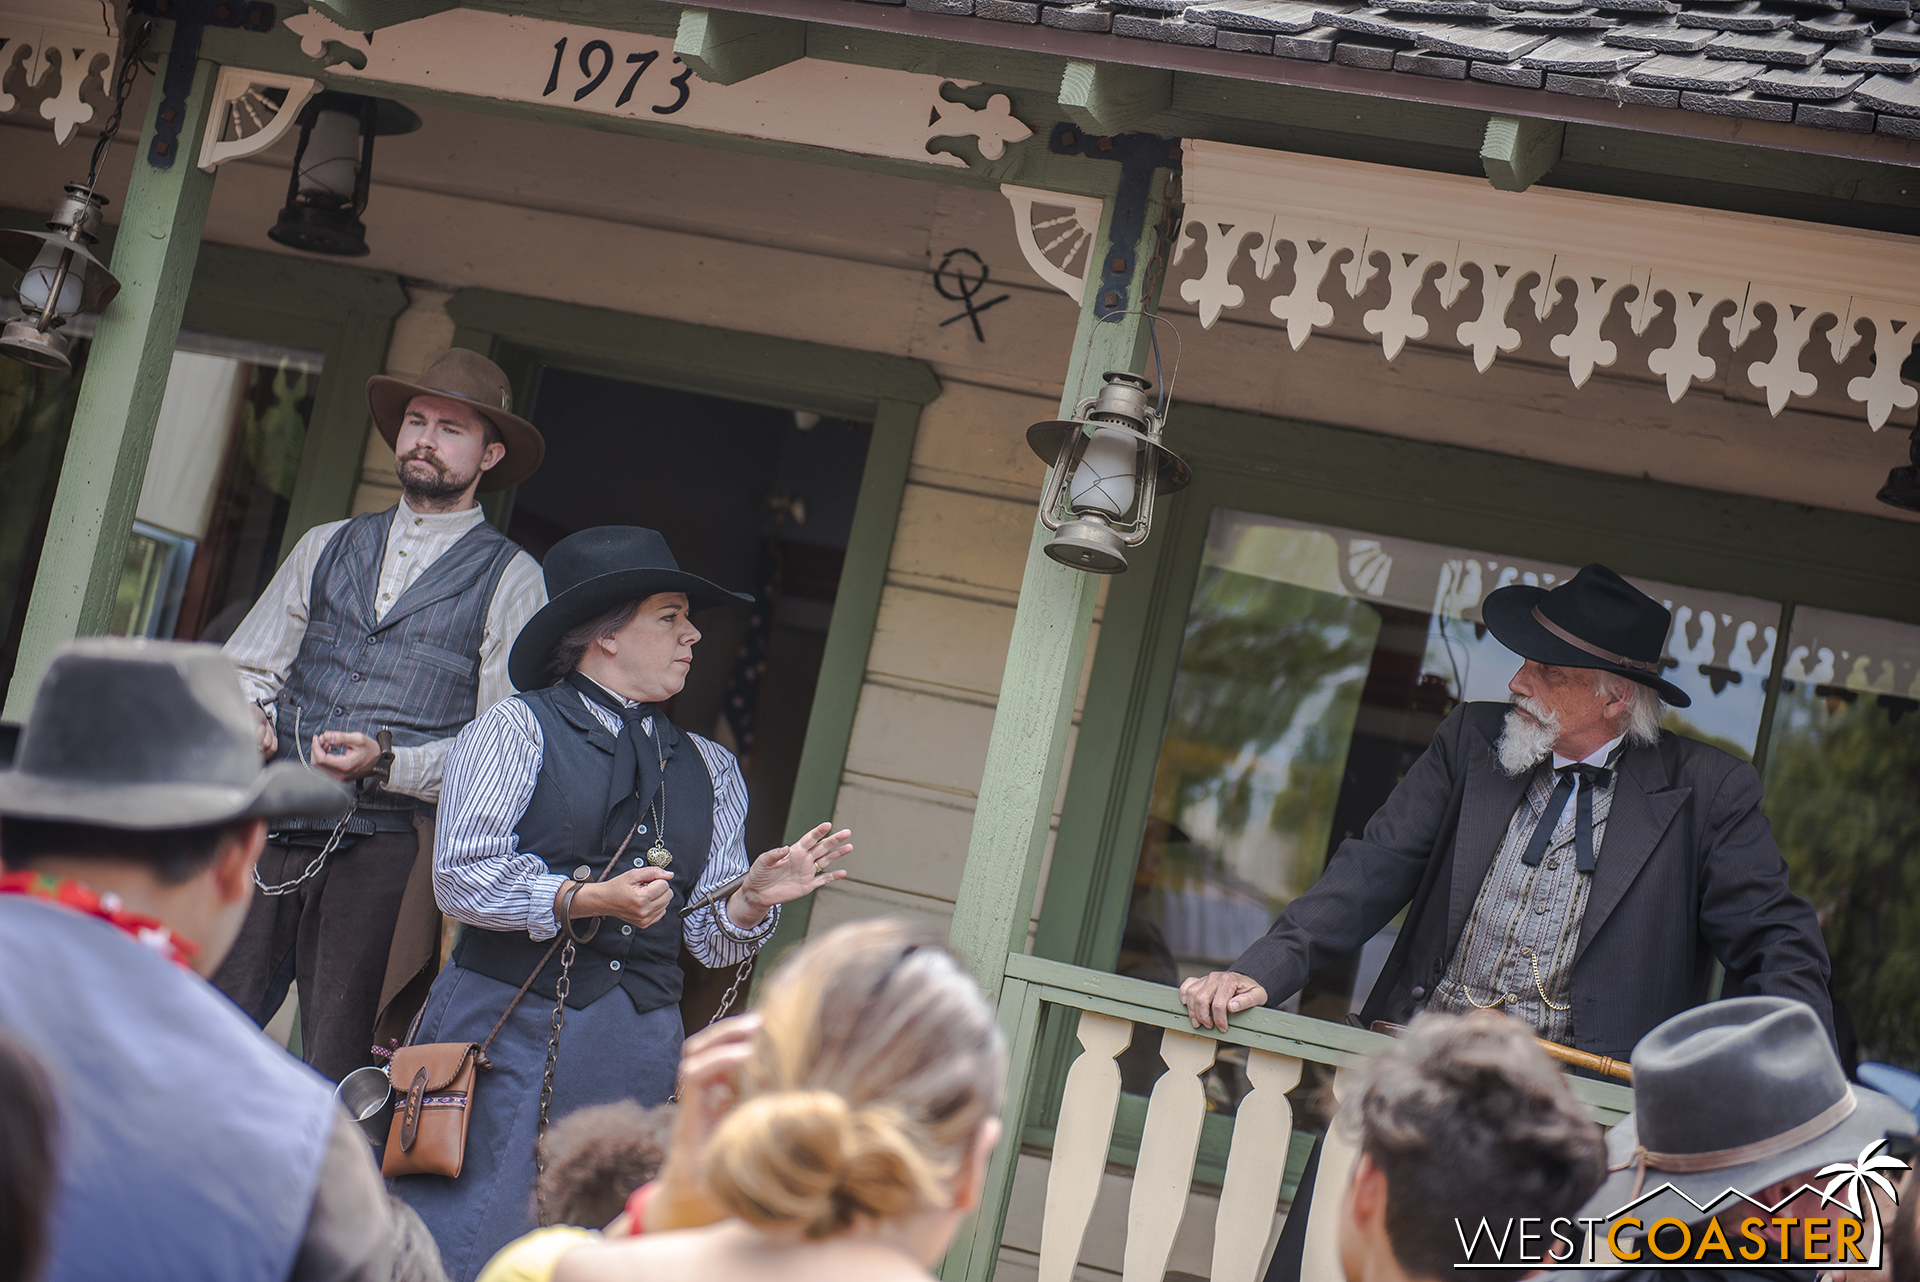 In front of the townspeople, Phyllis Mayfield is given the chance to plead her case by Judge Roy Bean, who also reveals his romantic past with Ma Mayfield, much to everyone's shock.